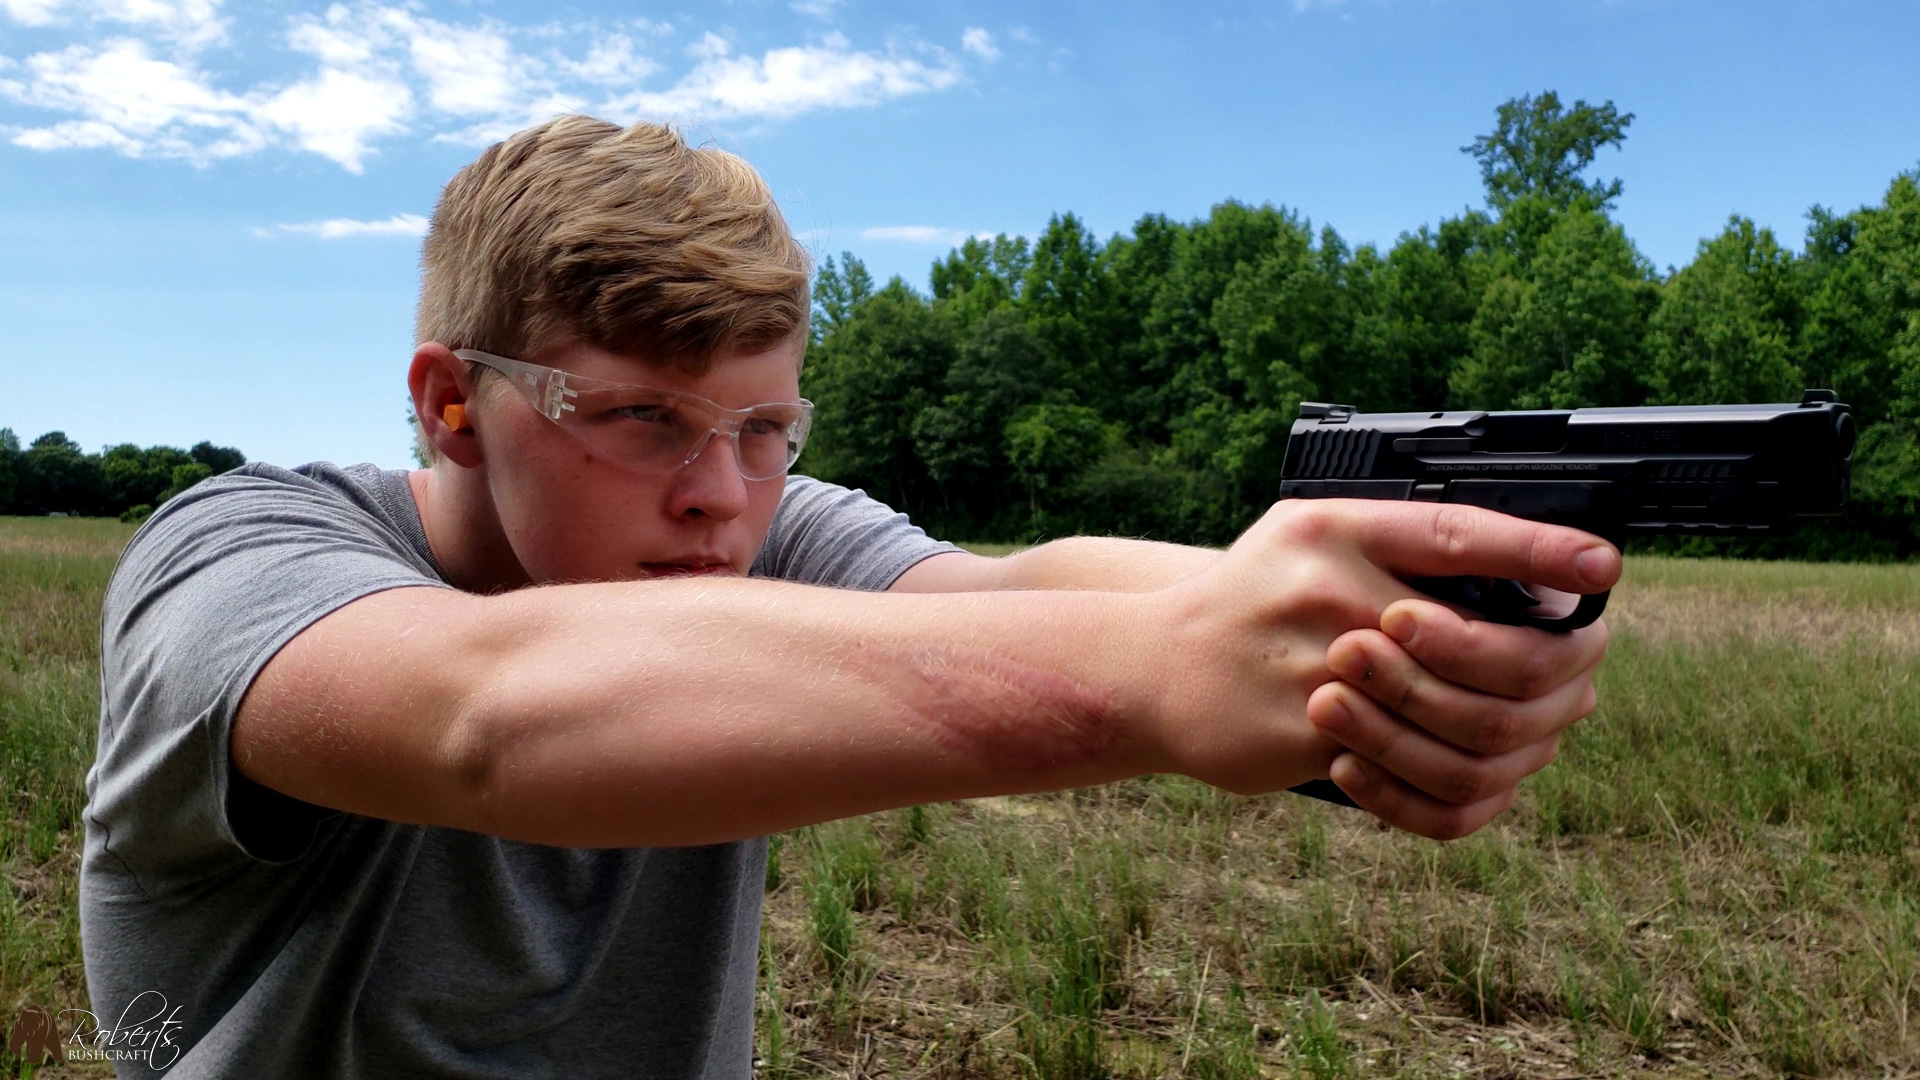 Smith and Wesson Target Practice with AR-15 Sport II, 9MM and 45ACP